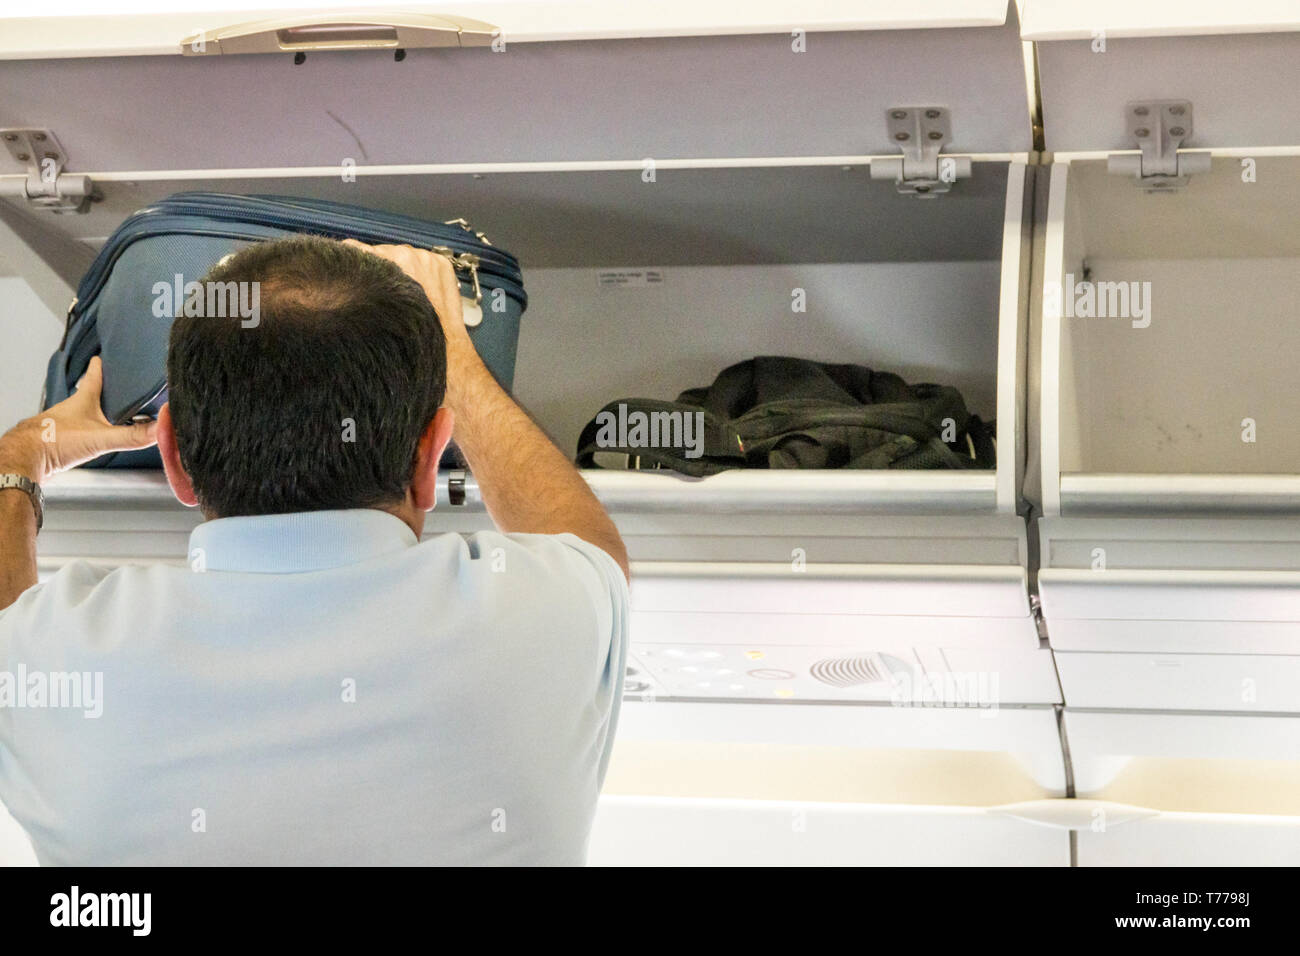 Cartagena Colombia Rafael Nunez International Airport CTG Avianca flight AV 34 onboard cabin Hispanic overhead luggage bin man storing bag - Stock Image